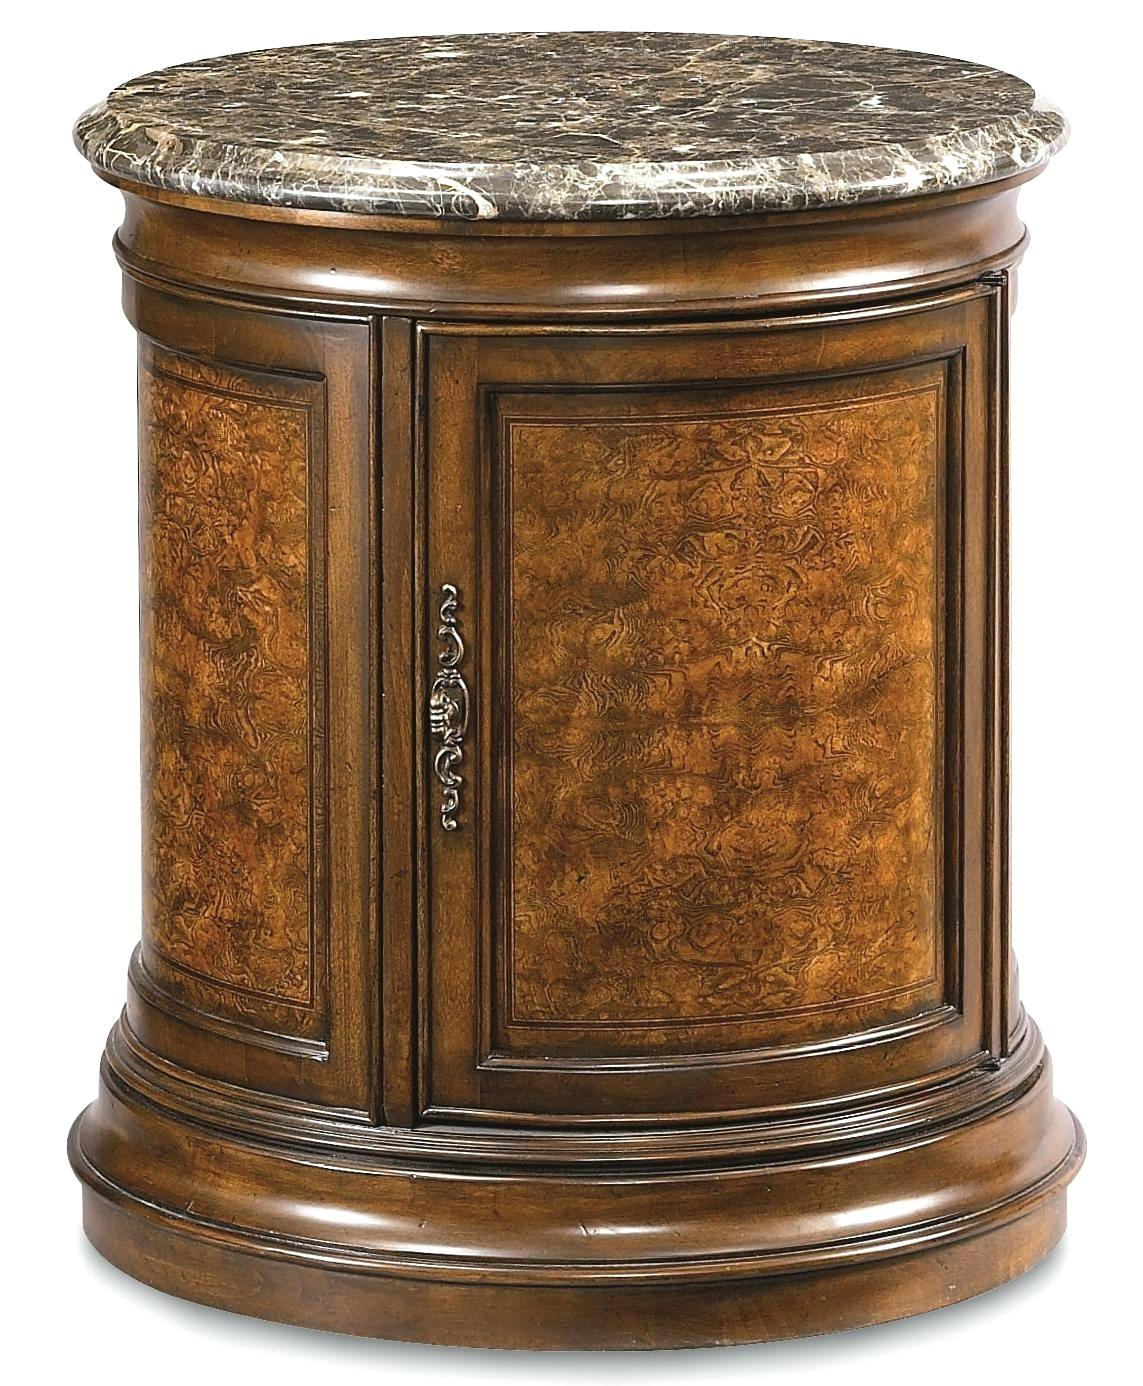 antique vintage burl wood leather top round drum table lamp fevcol door mahogany with drawer signy accent marble coffee duncan phyfe tables furniture blue end inch movable kitchen